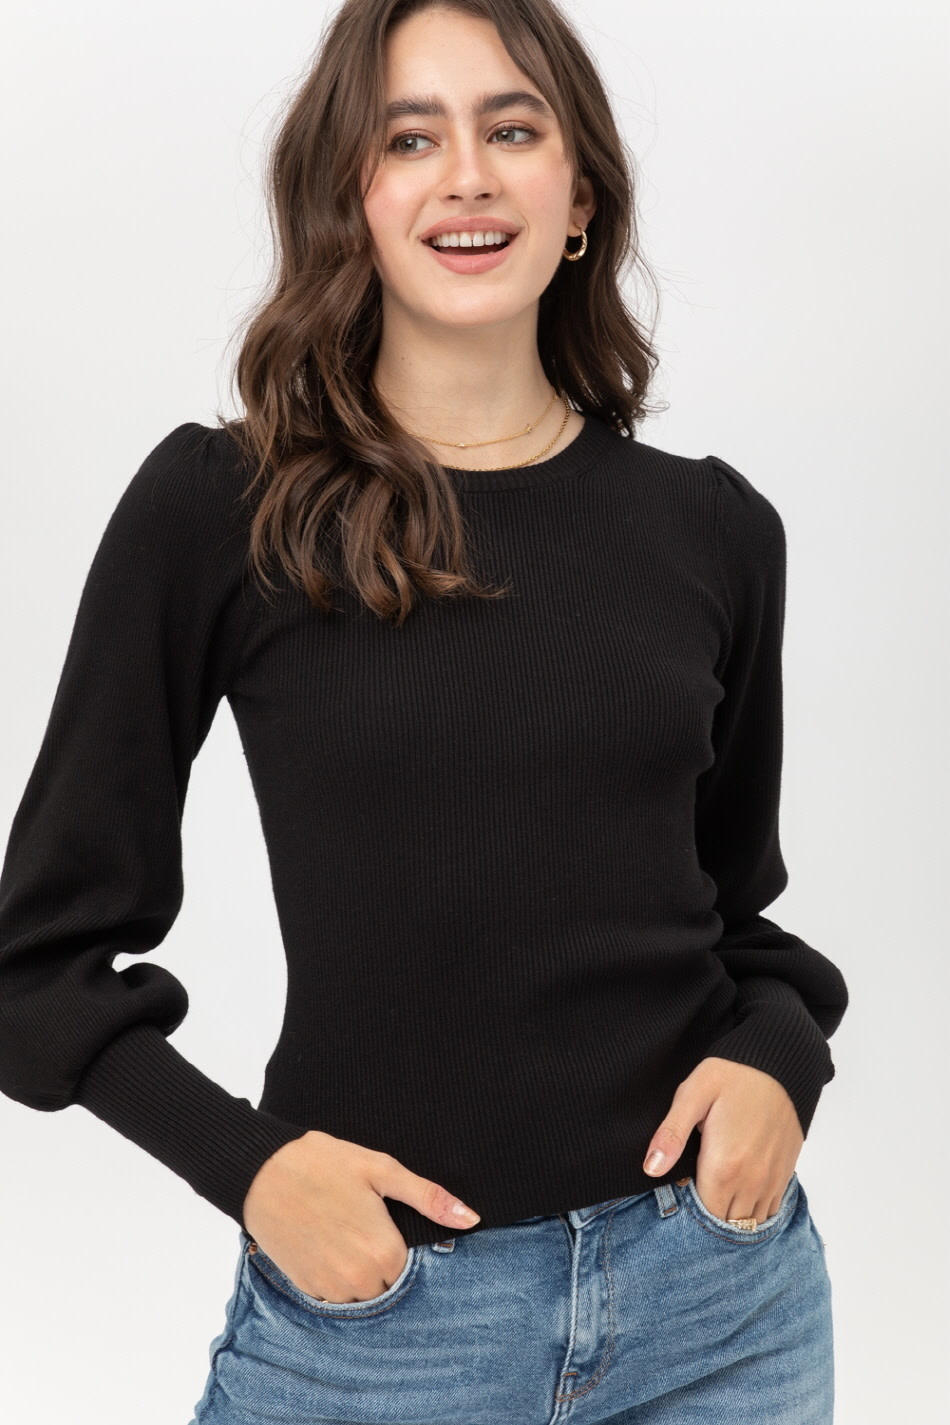 Fleurish Home Gathered Shoulder Cropped Sweater